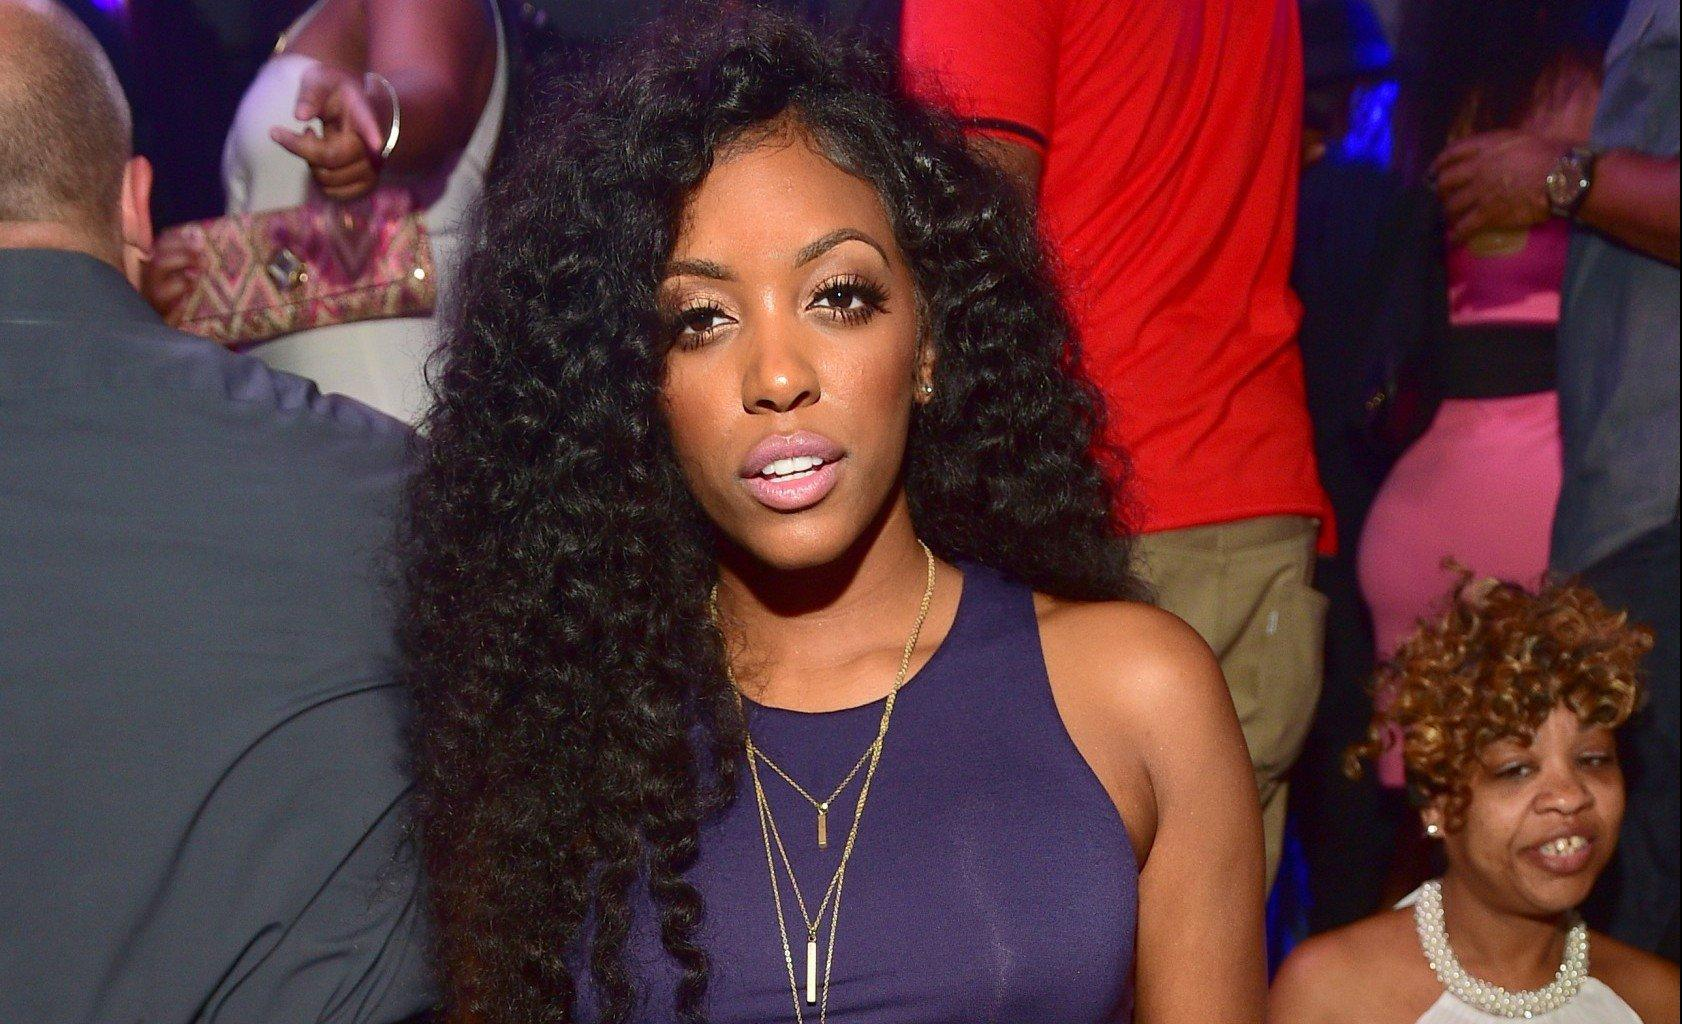 Porsha Williams Makes Fans Happy With Throwback Pics Of One Of Her BFFs For His Birthday